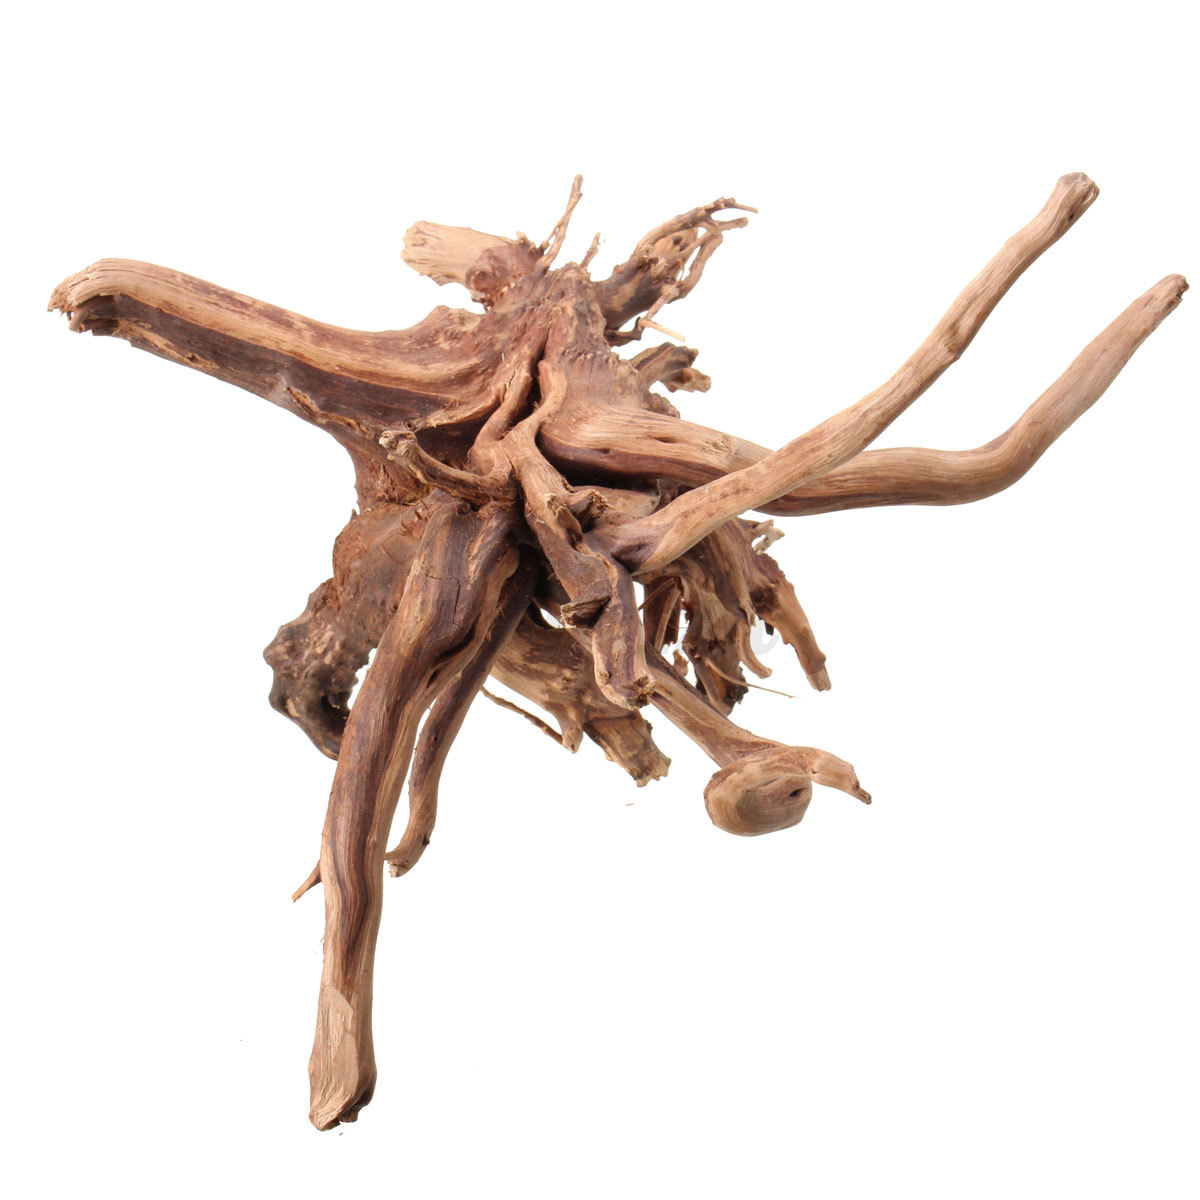 Bois flott arbre racine tronc branche aquarium ornement for Decoration bois flotte aquarium